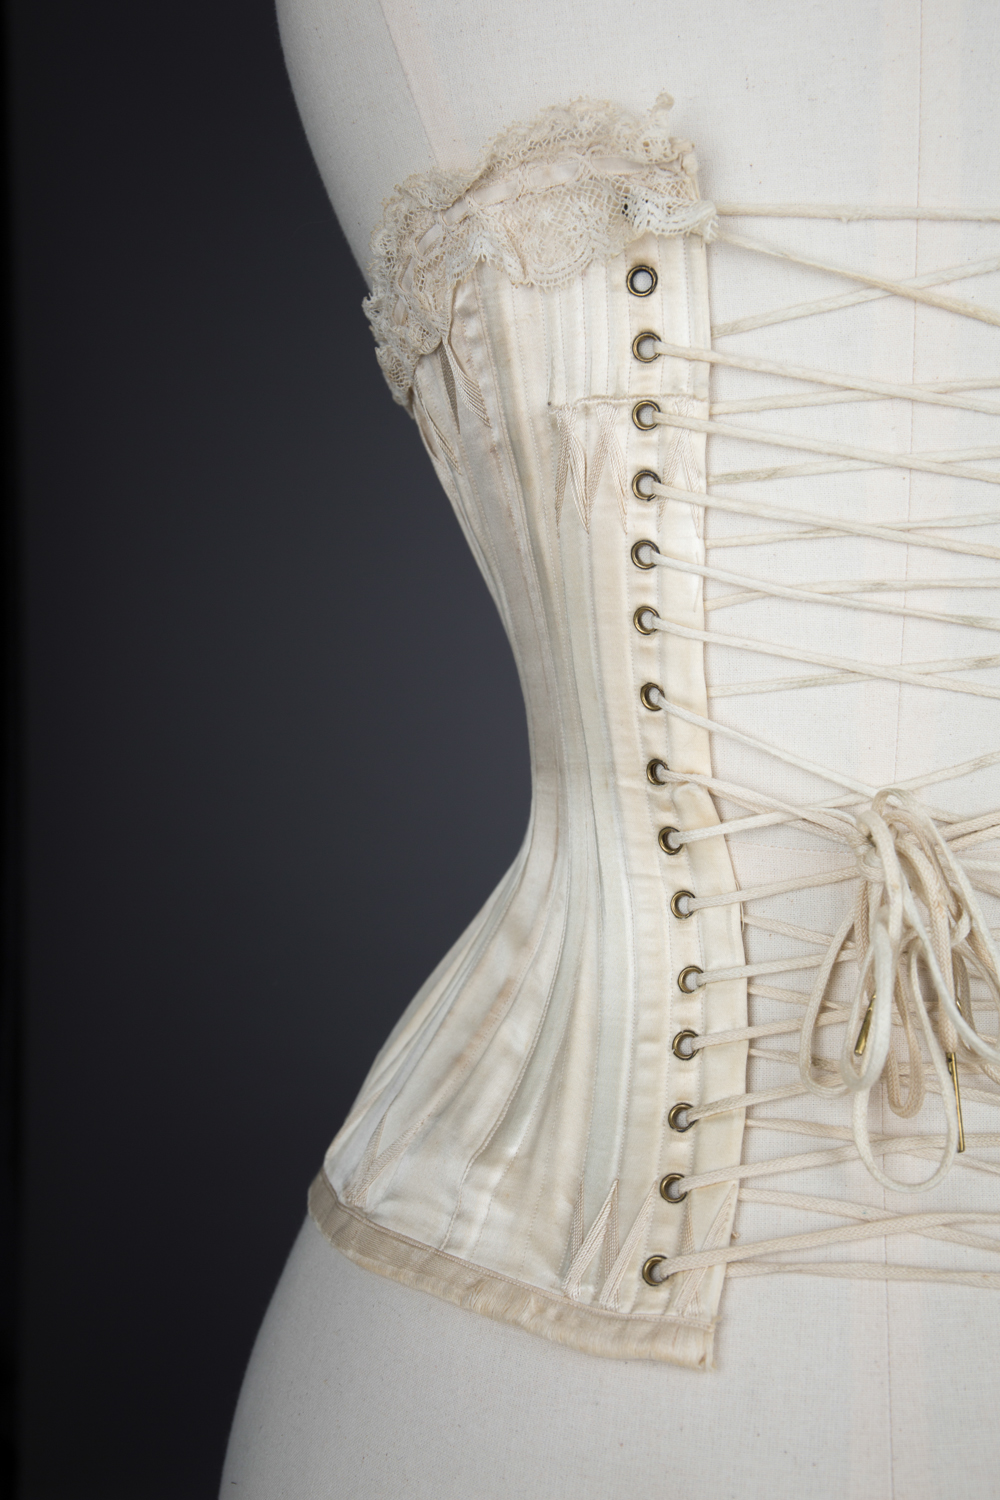 'Stella' Ivory Satin Corset With Flossing Embroidery & Cording by C. T., c. 1900, made in France for the USA market. The Underpinnings Museum. Photography by Tigz Rice.